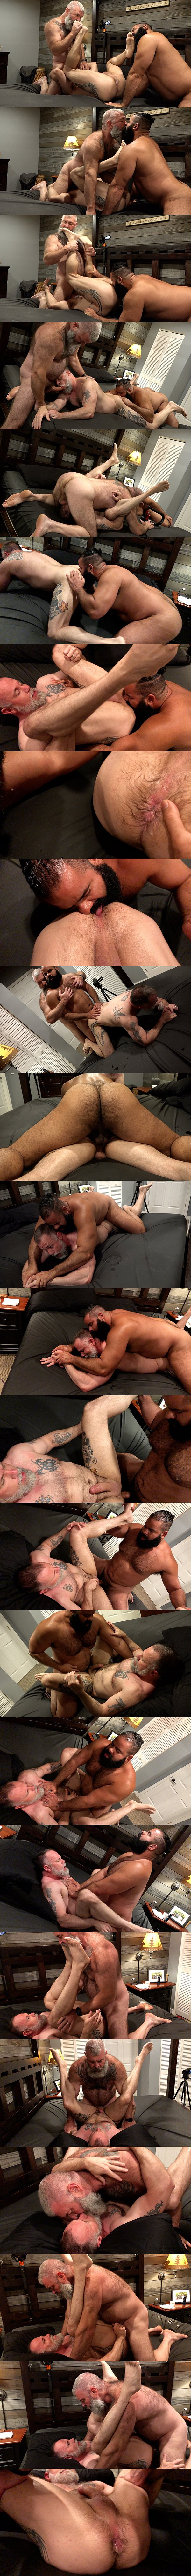 Oscar Bear and Will Angell bareback Liam Angell before they creampie Liam in a muscle bear threeway in Barefoot and Bred at Musclebearporn 01